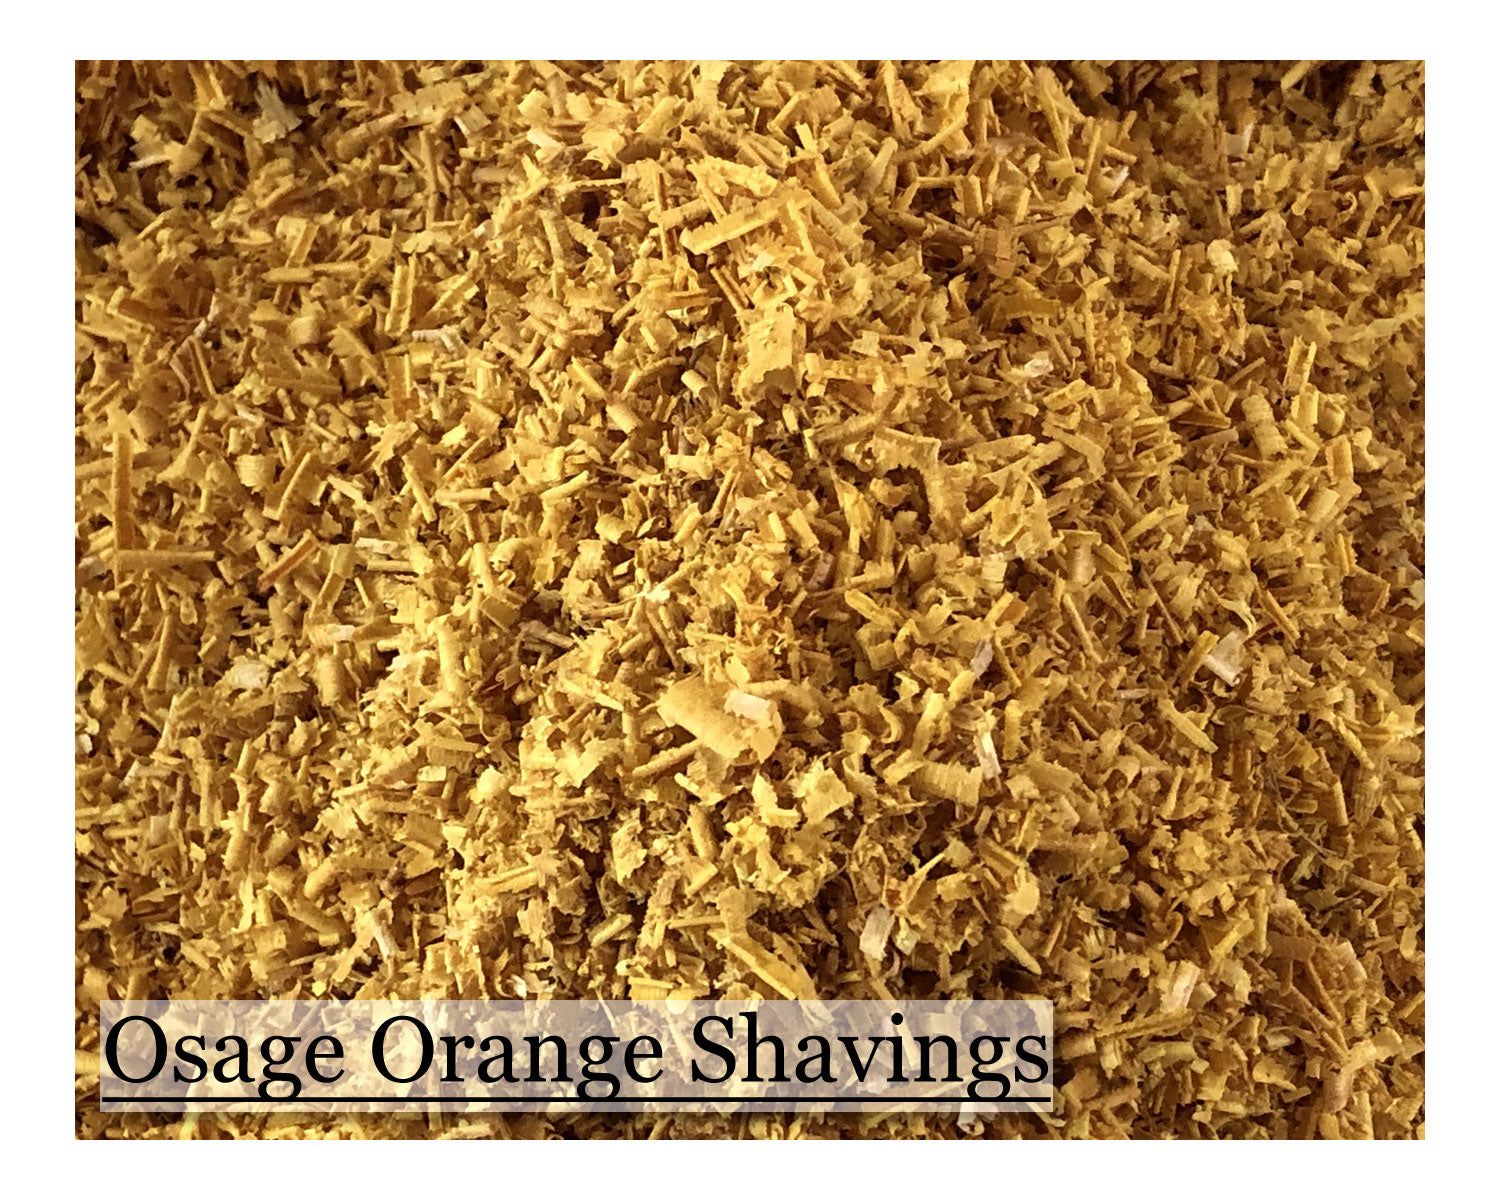 Osage Orange Shavings - 1oz (28g)